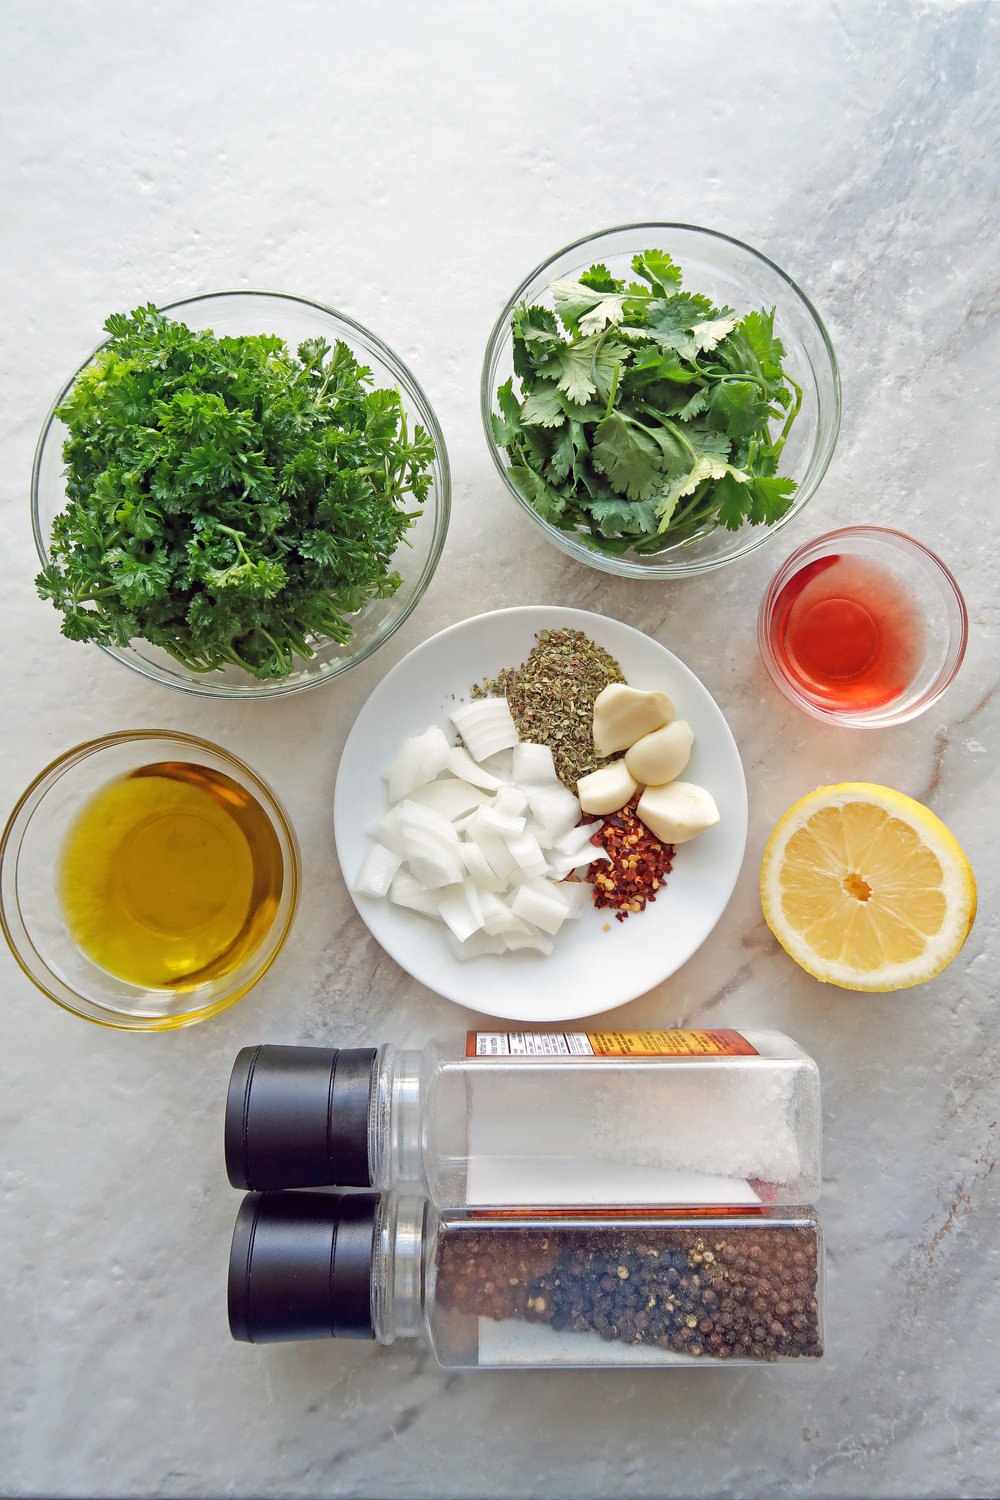 Bowls of parsley, cilantro, olive oil, and red wine vinegar alongside a lemon, chopped onions, garlic, oregano, and red pepper flakes.